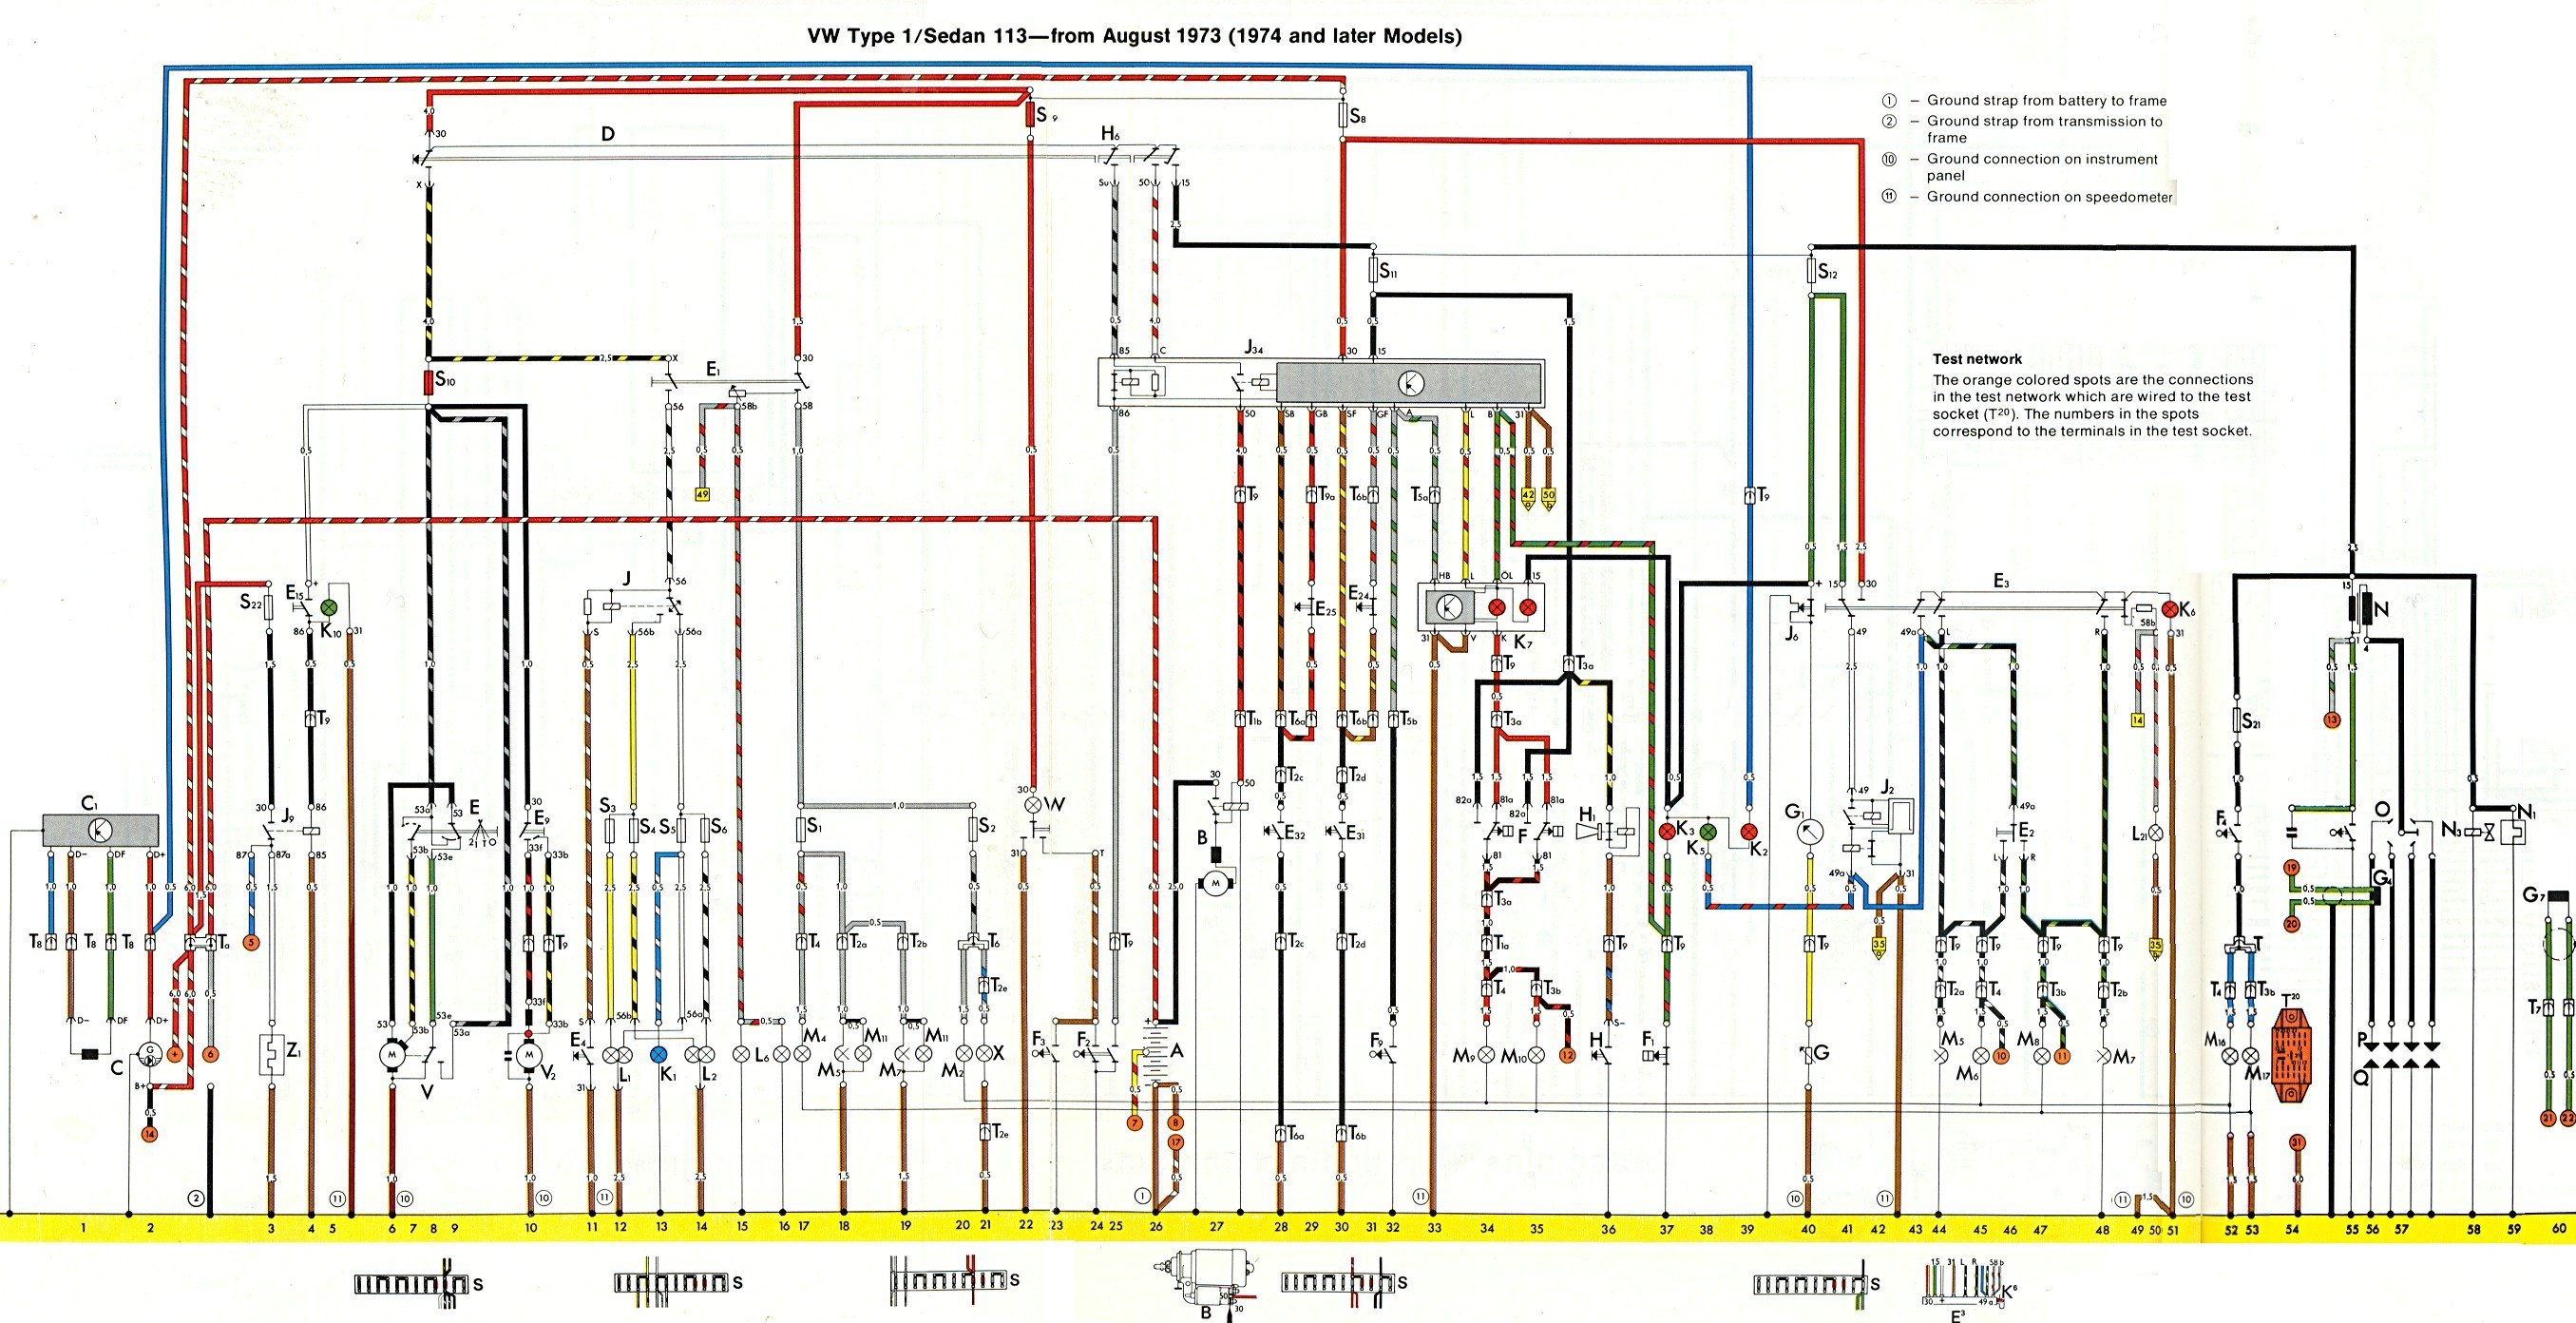 2003 jetta wiring harness diagram 2003 image wiring harness for 2003 beetle wiring auto wiring diagram database on 2003 jetta wiring harness diagram